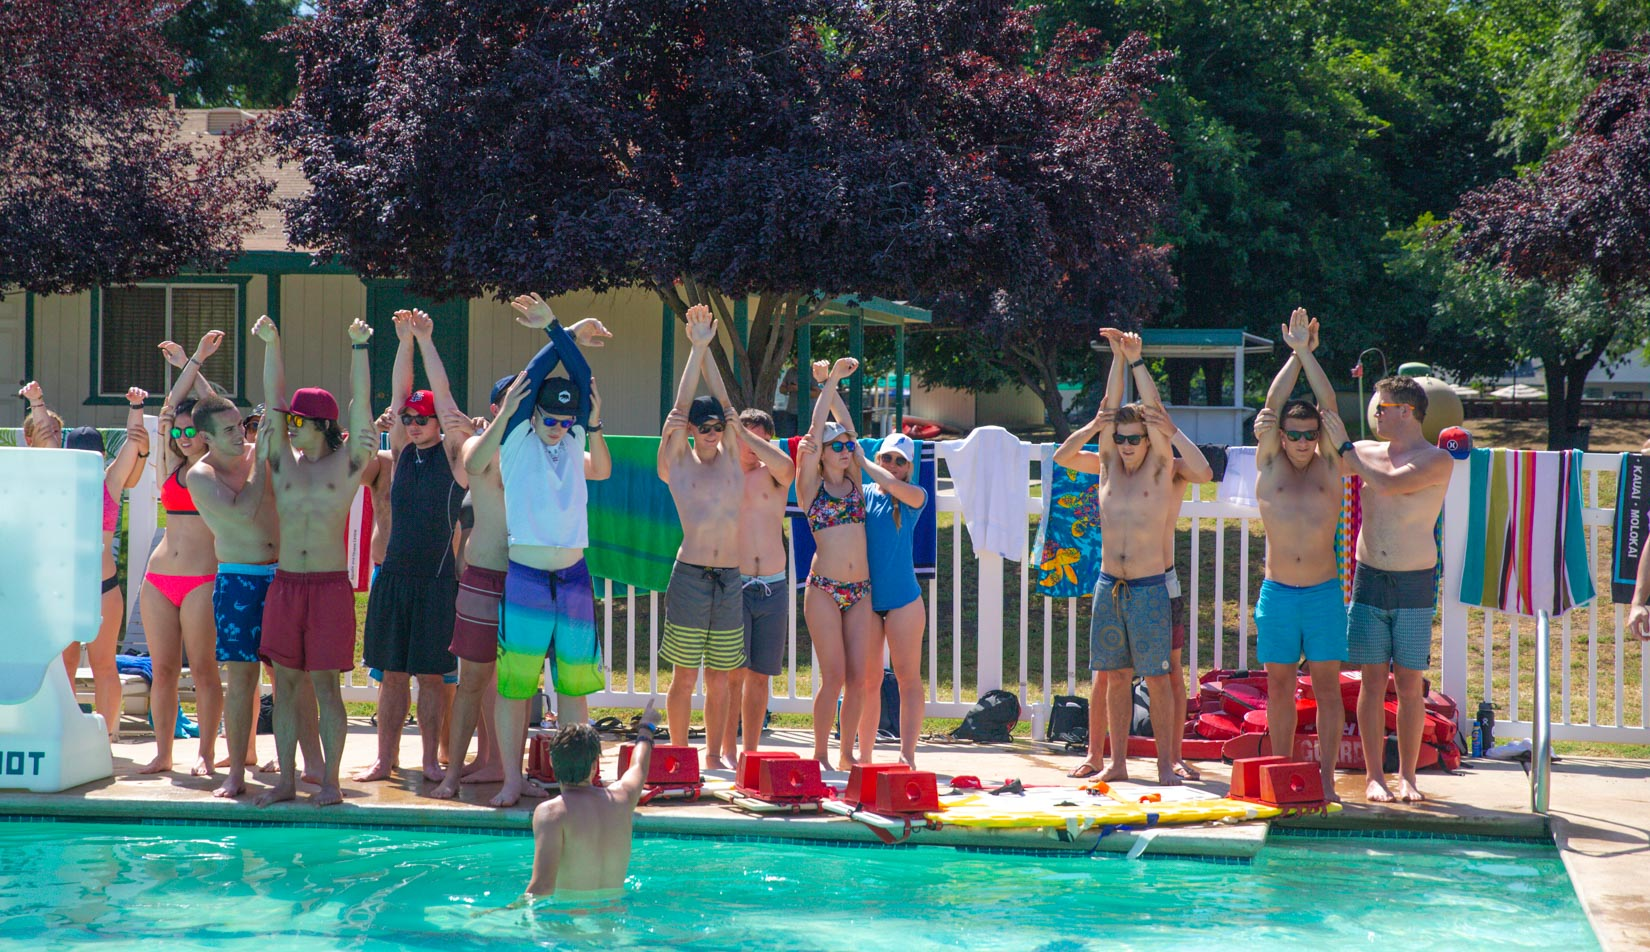 Lifeguard training in a pool for the staff